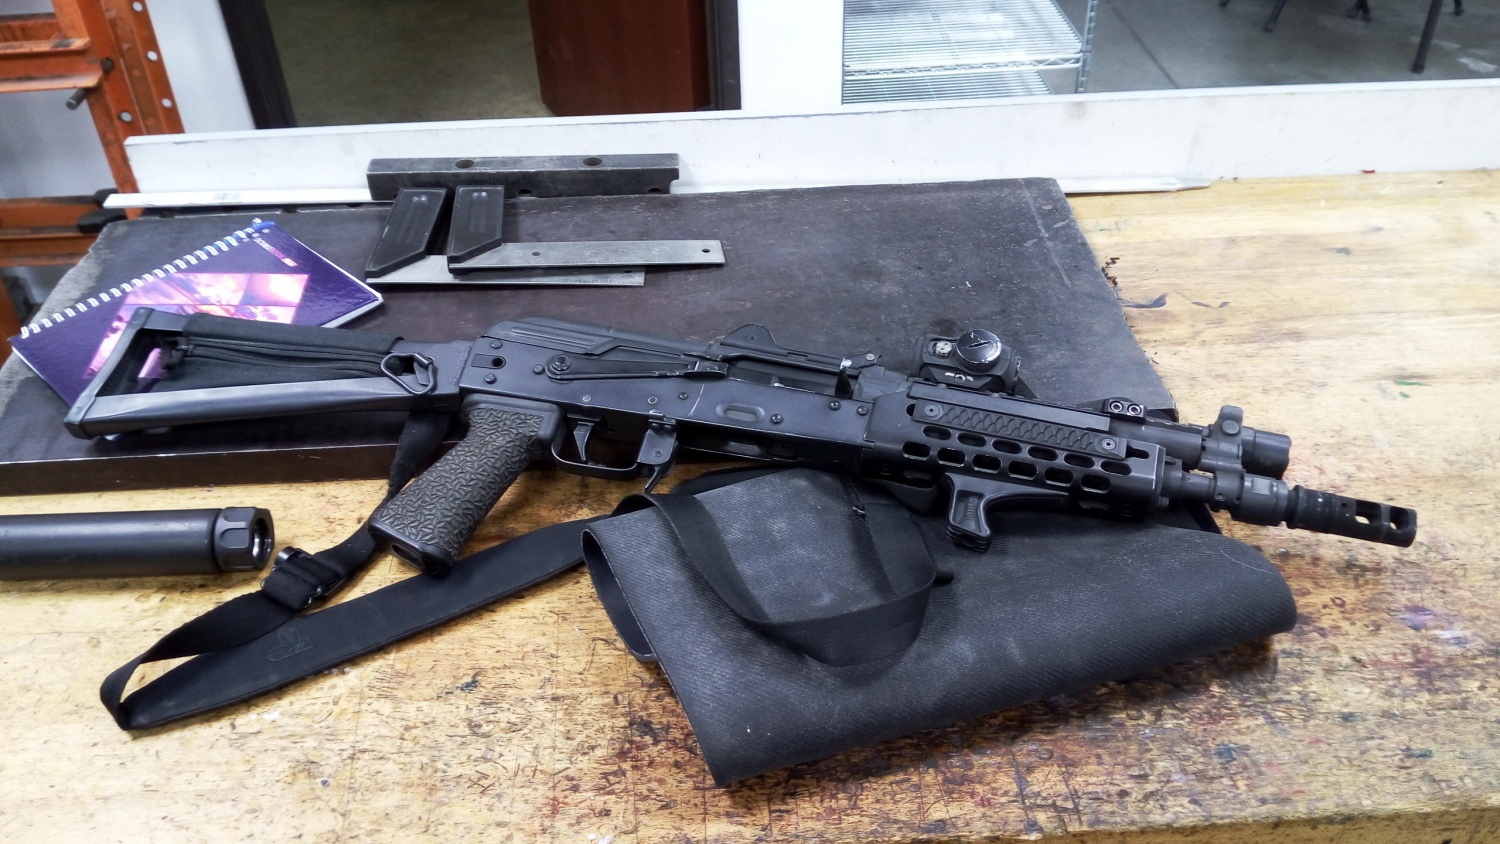 One of Travis Haley personal AKs, built by Rifle Dynamics.Aimpoint red dot sight is mounted on the Ultimak rail.